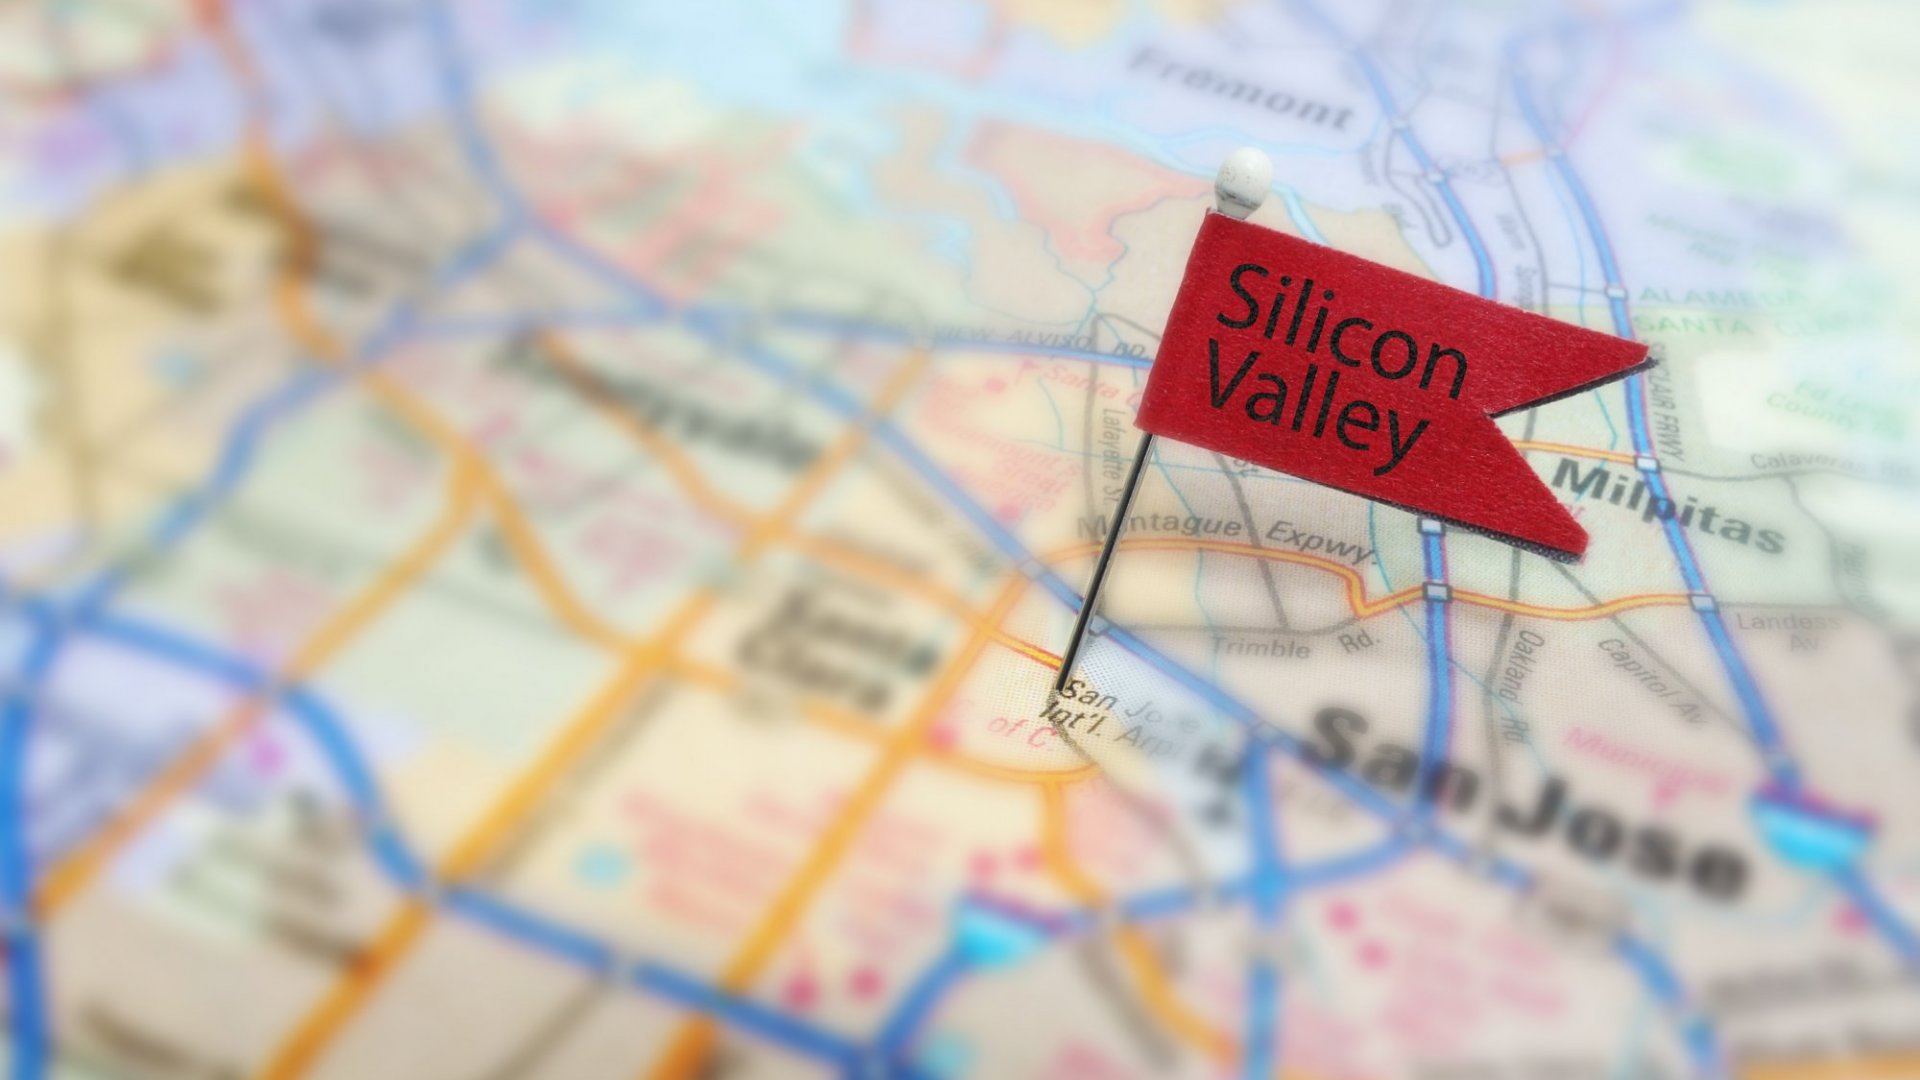 How to Become a Silicon Valley Insider Without Residing There